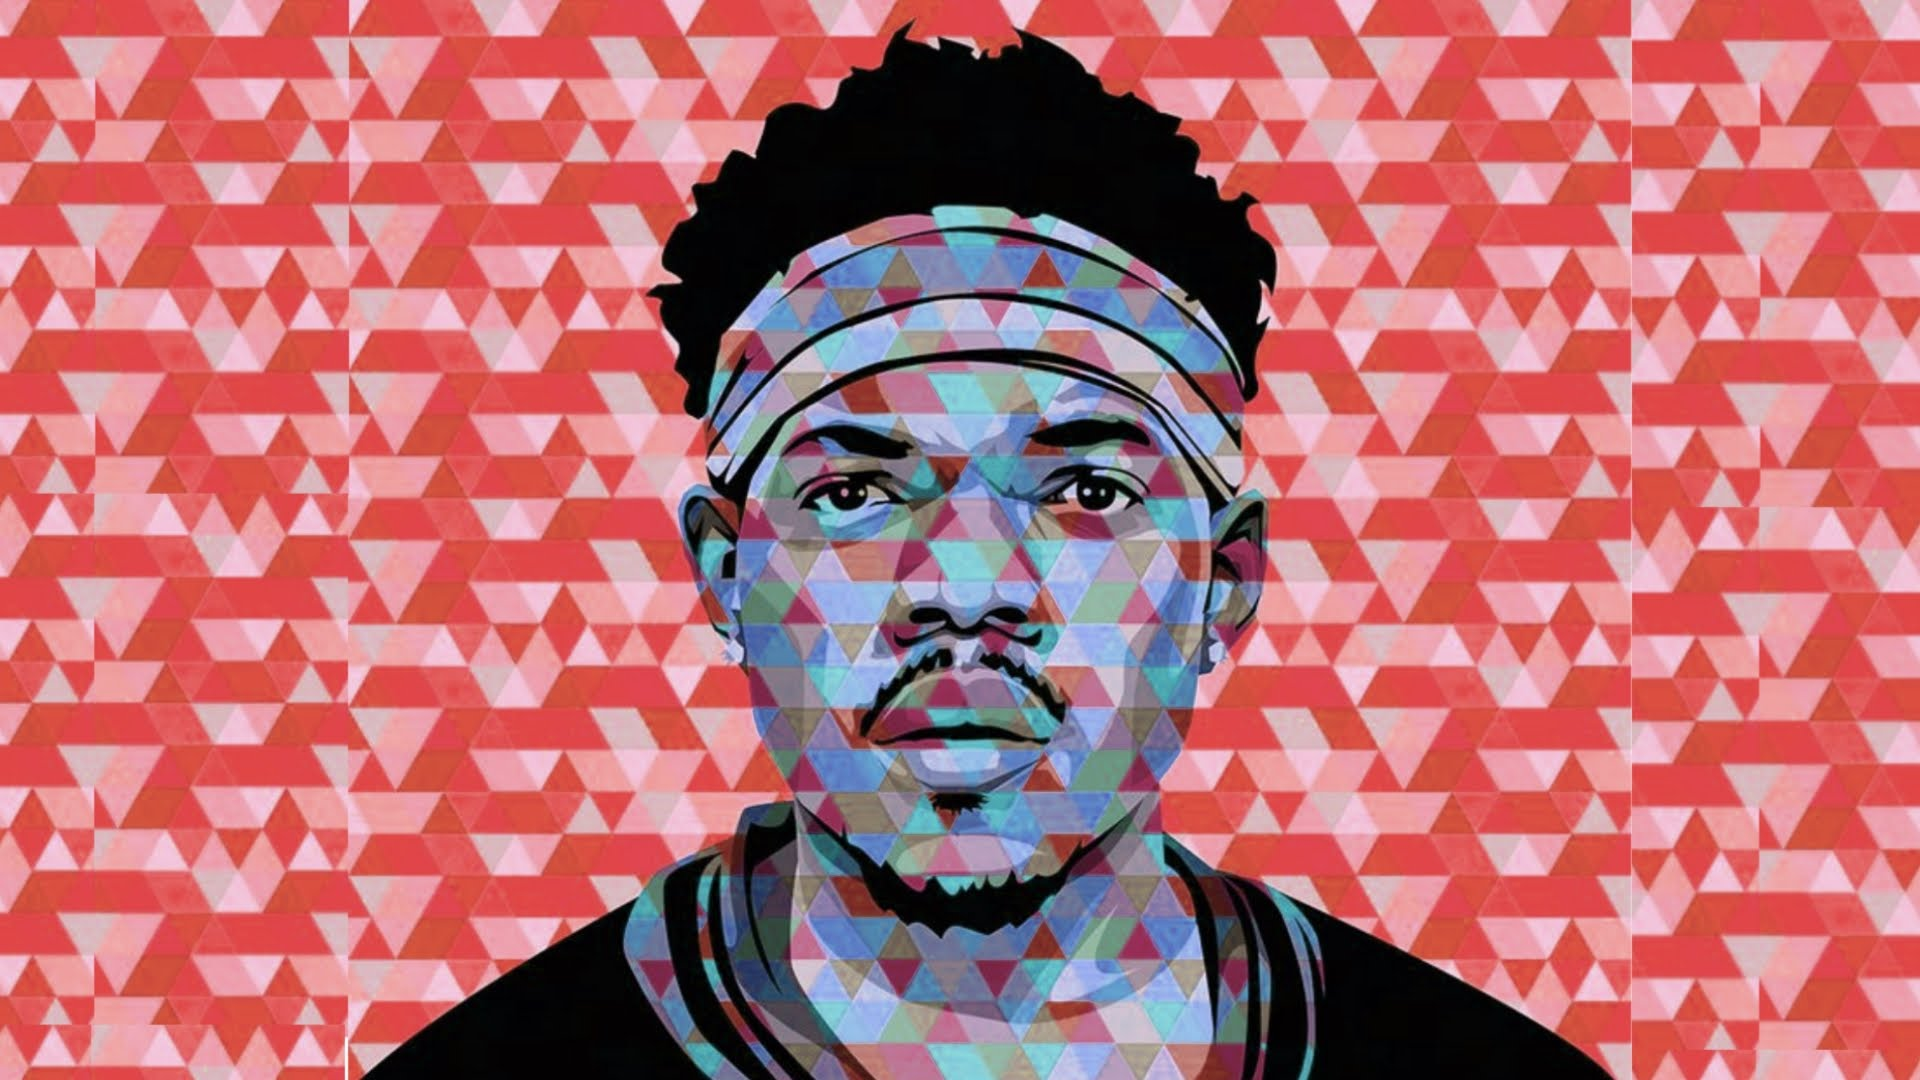 Chance the rapper dopamine ps4wallpapers download wallpaper voltagebd Images